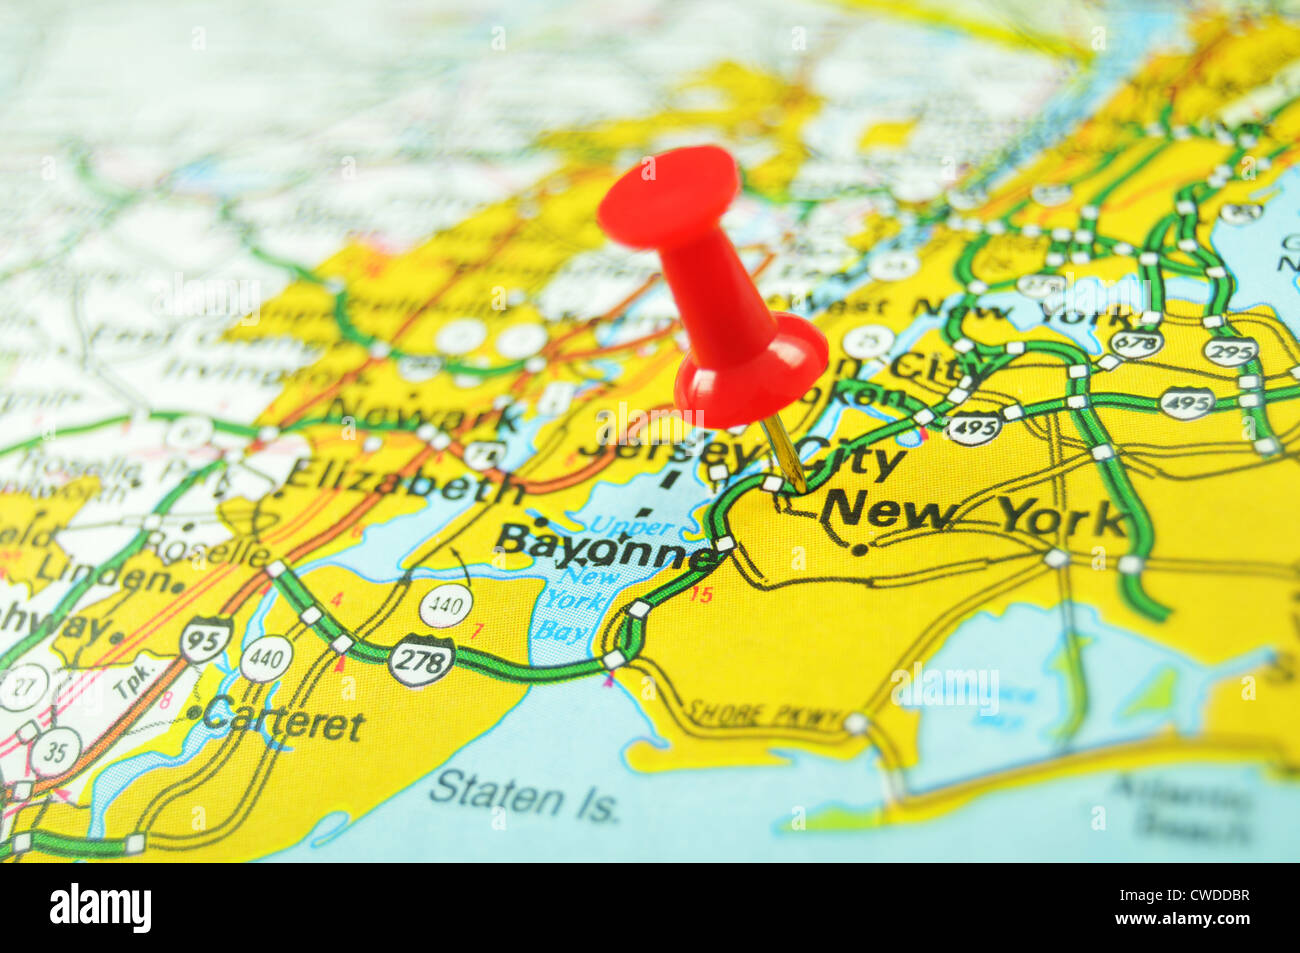 American Cities New York Marked With Red Pin On Map Stock Photo